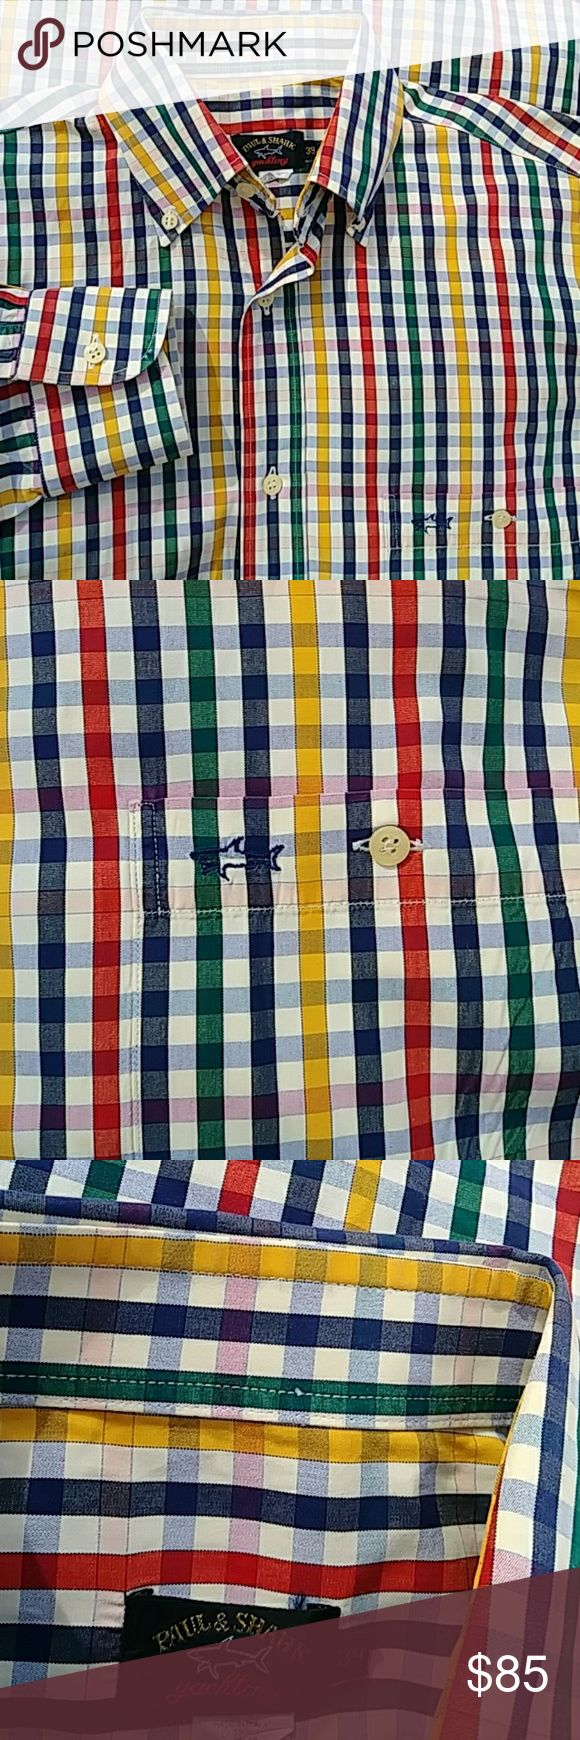 PAUL & SHARK Striped Cotton DressShirt-Gently used Paul & Shark have a well-deserved global reputation for high quality fabrics and premium design; producing every piece of their collection in their country of origin, Italy. scotts work closely with the brand to secure the best of their menswear.  This shirt has a left chest pocket embroidered w/ shark. Smooth extra fine woven cotton. 100% Cotton. Single button rounded barrel cuffs. Classic fit. collar style. Paul & Shark Shirts